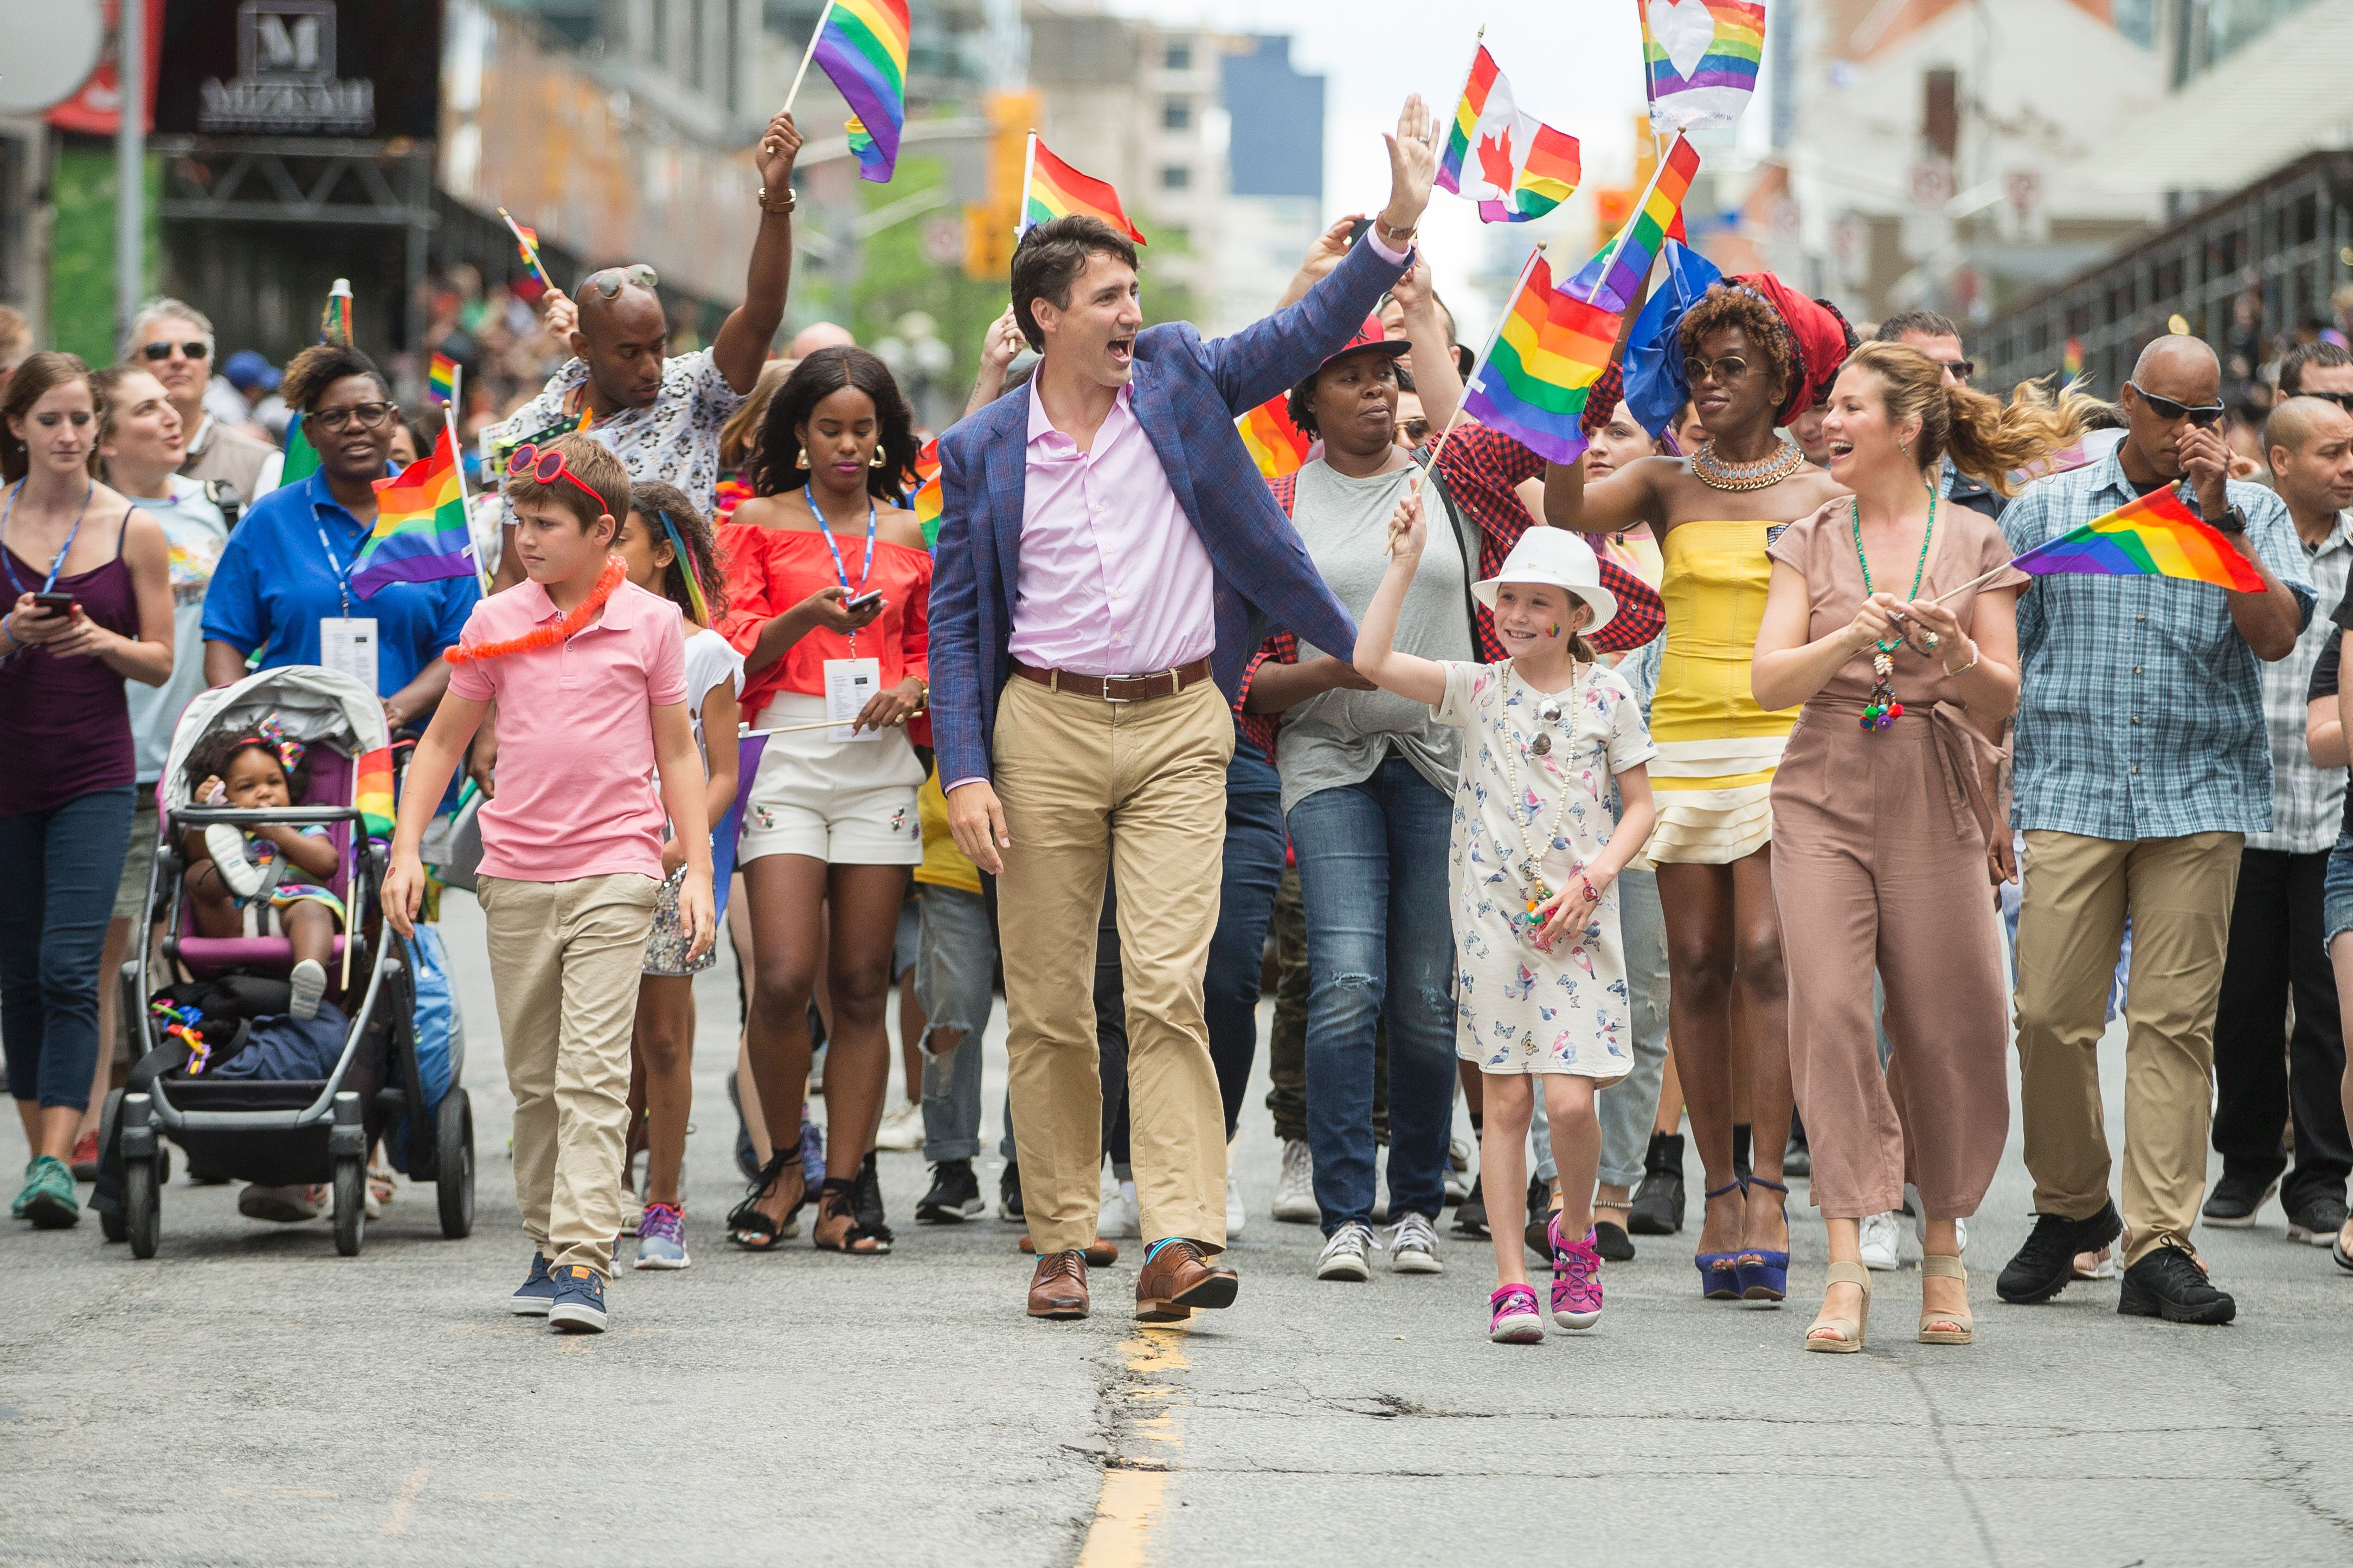 Prime Minister Justin Trudeau waves to the crowd as he, his wife Sophie Gregoire Trudeau and their children Xavier and Ella-Grace march in the Pride Parade in Toronto, June 25, 2017. / AFP PHOTO / GEOFF ROBINS        (Photo credit should read GEOFF ROBINS/AFP/Getty Images)